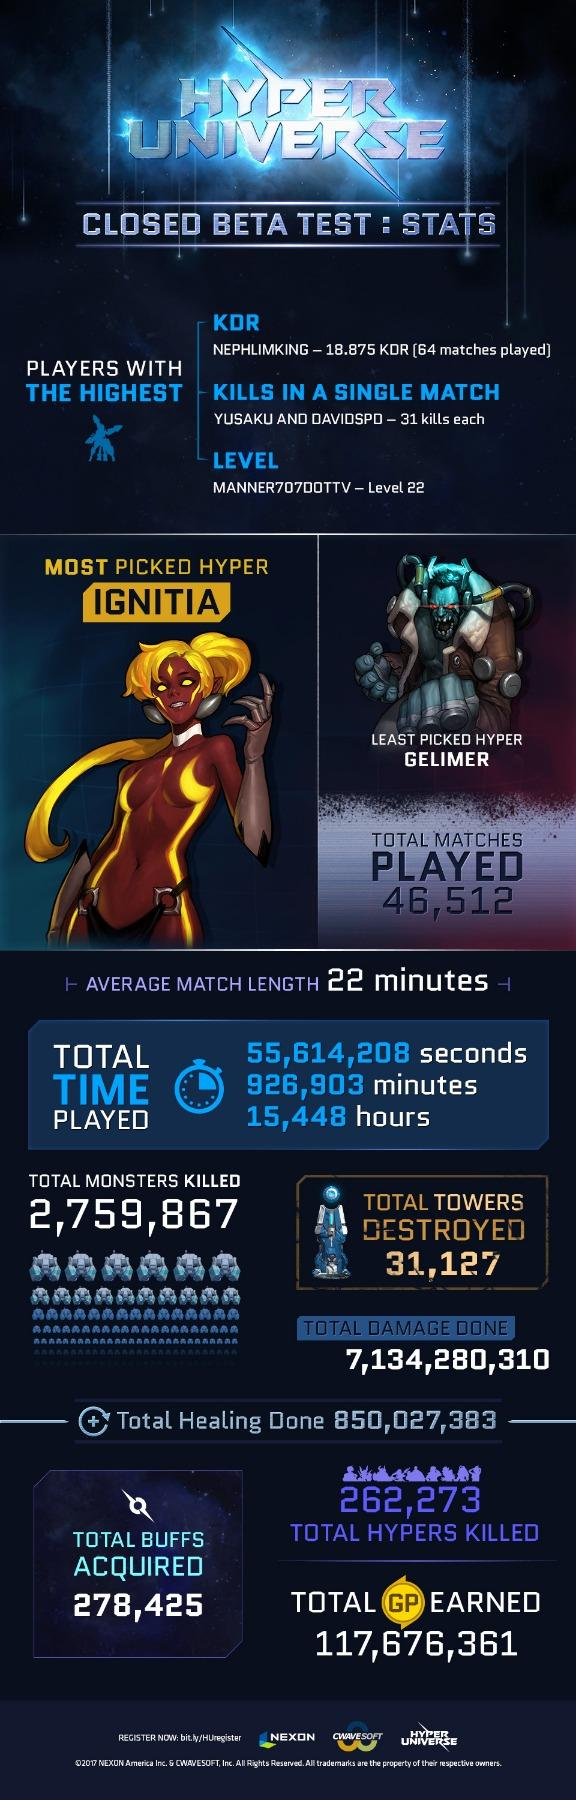 Hyper Universe infographic